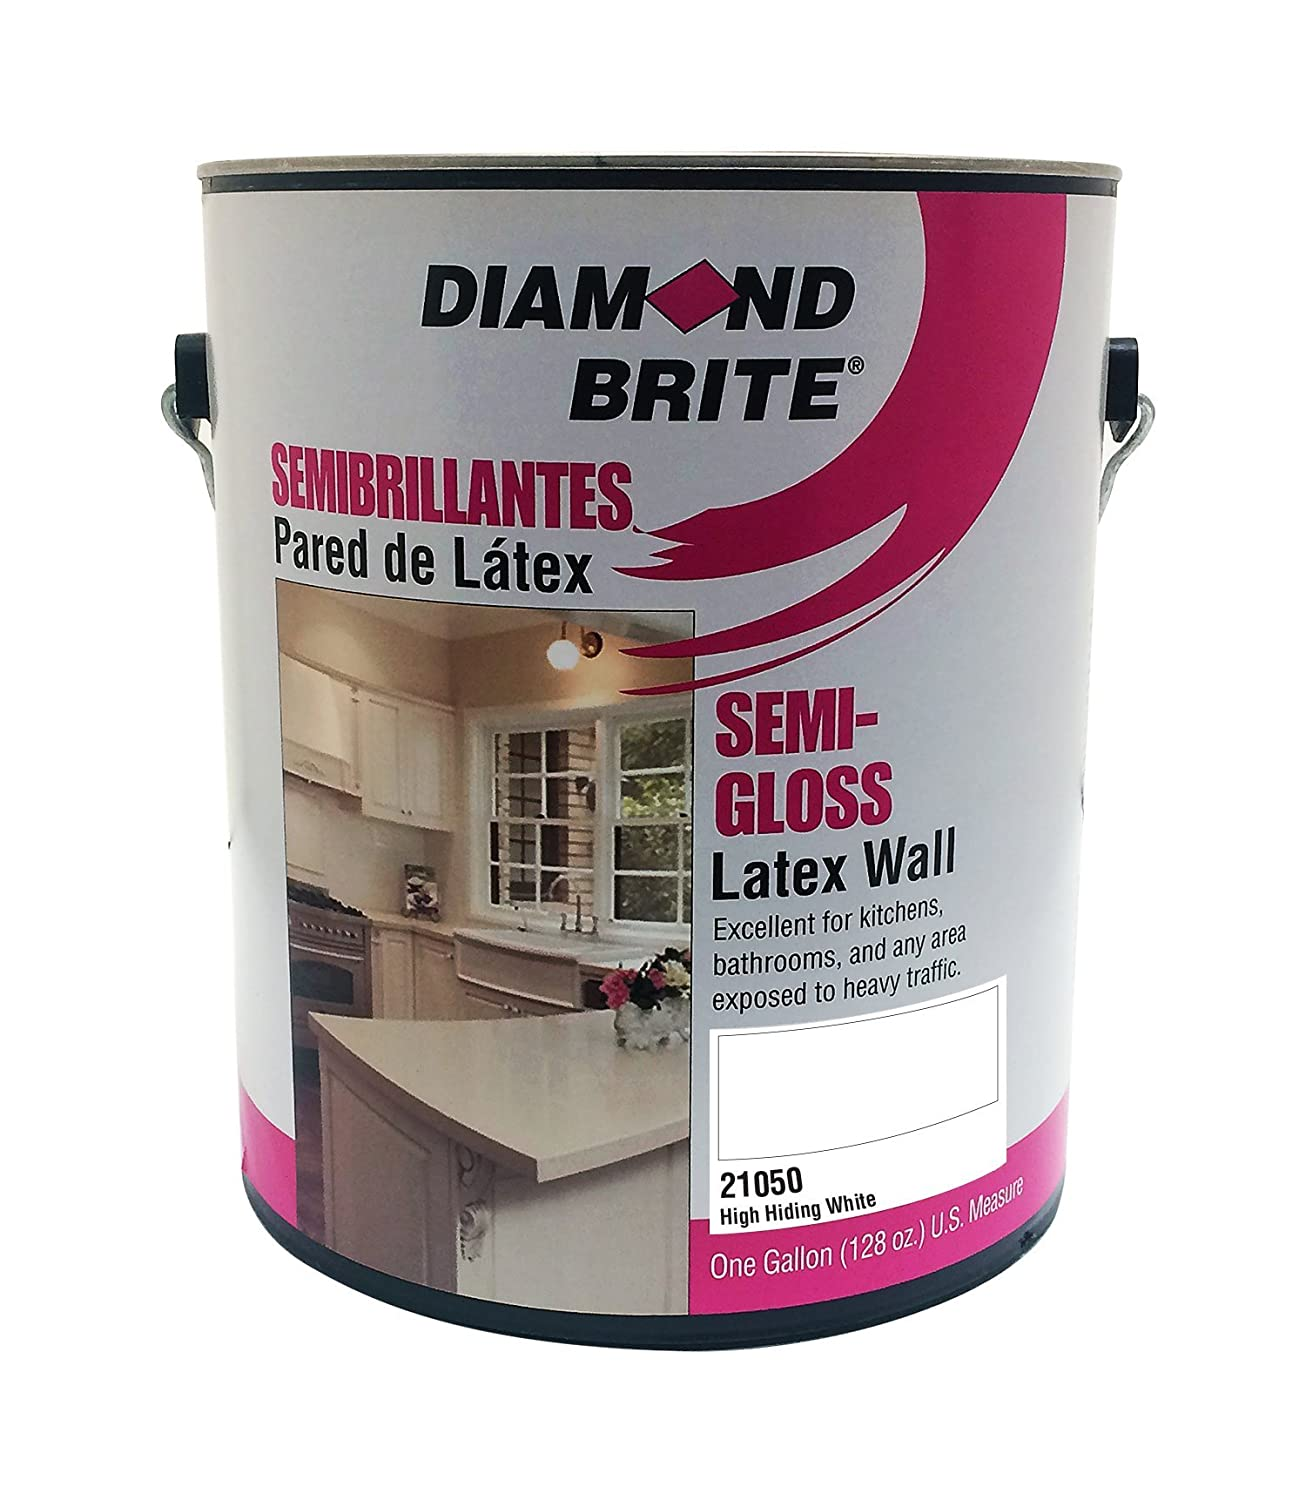 Amazon.com: Diamond Brite Paint 21050 1-Gallon Semi Gloss Latex ...